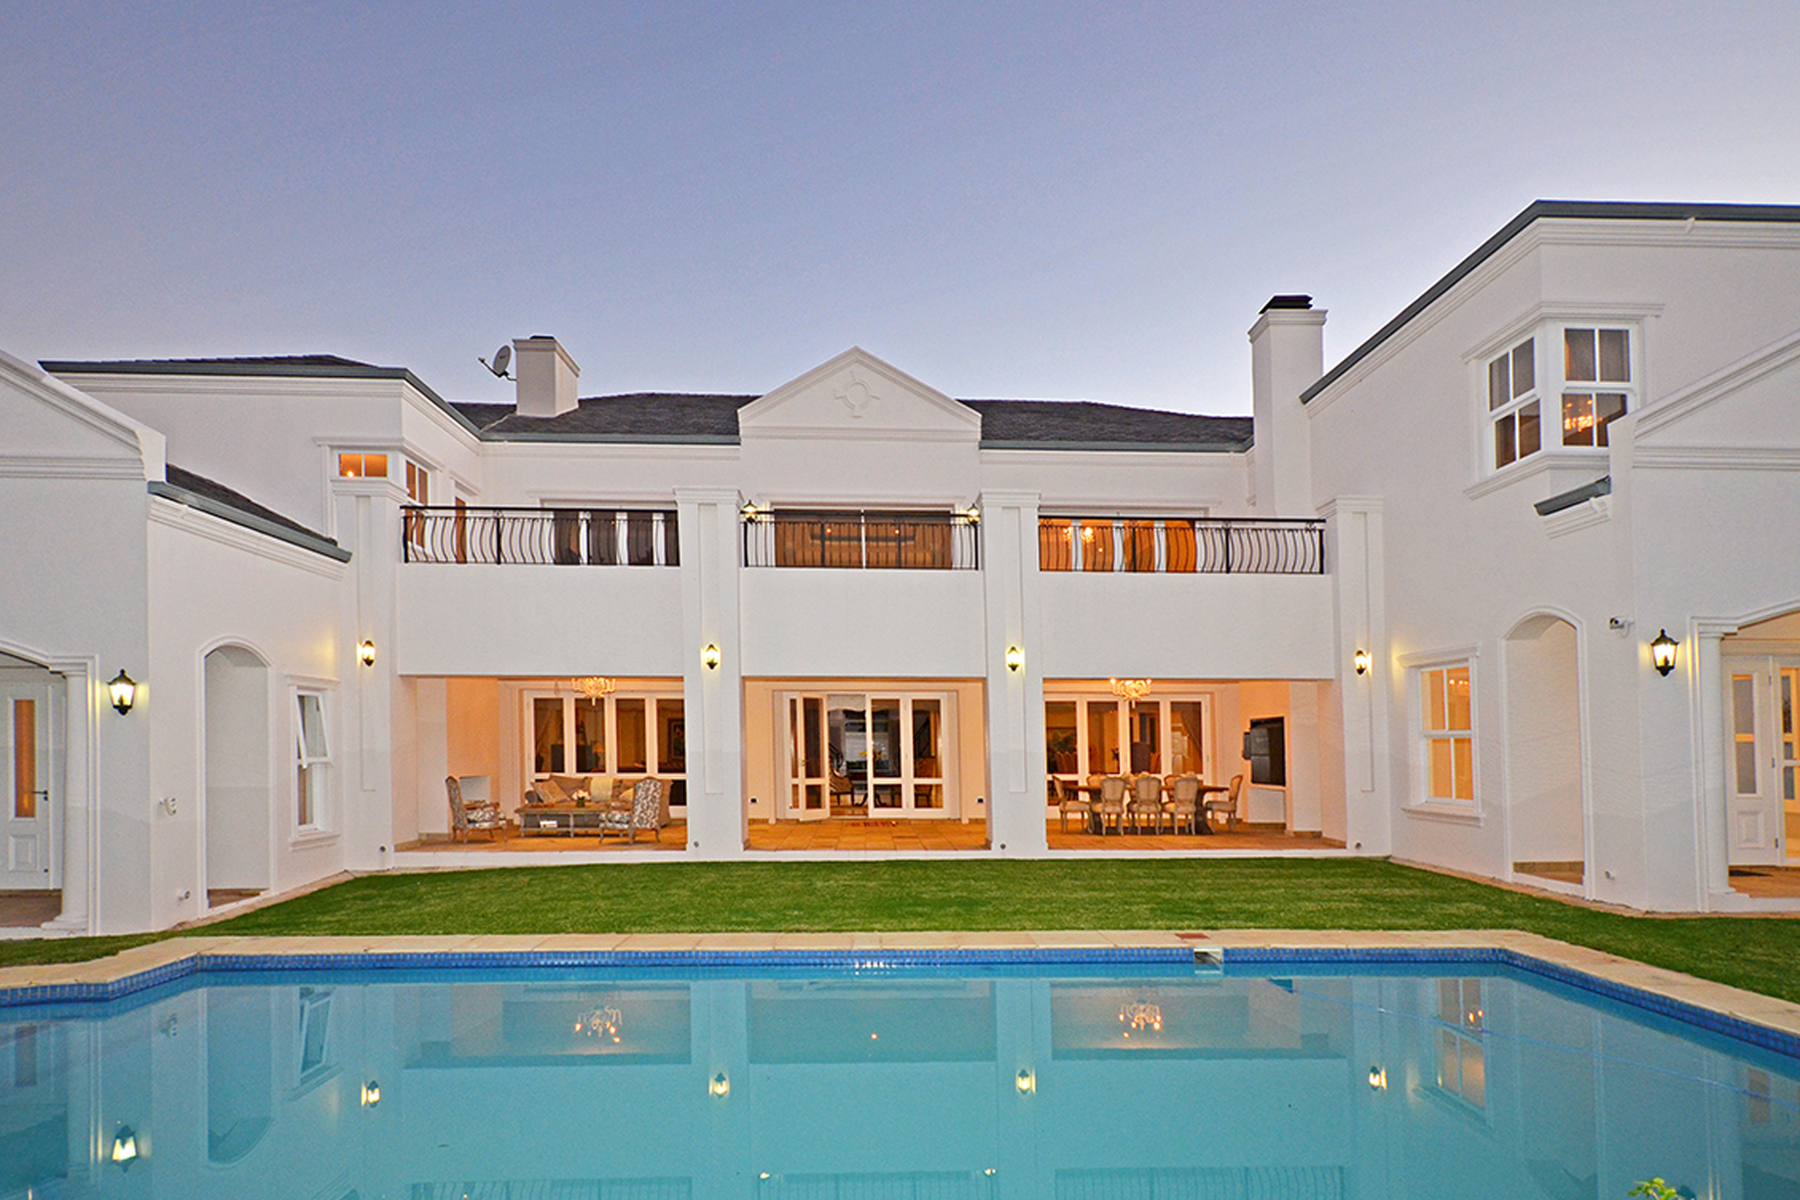 Single Family Home for Sale at Stratton Avenue Johannesburg, Gauteng South Africa